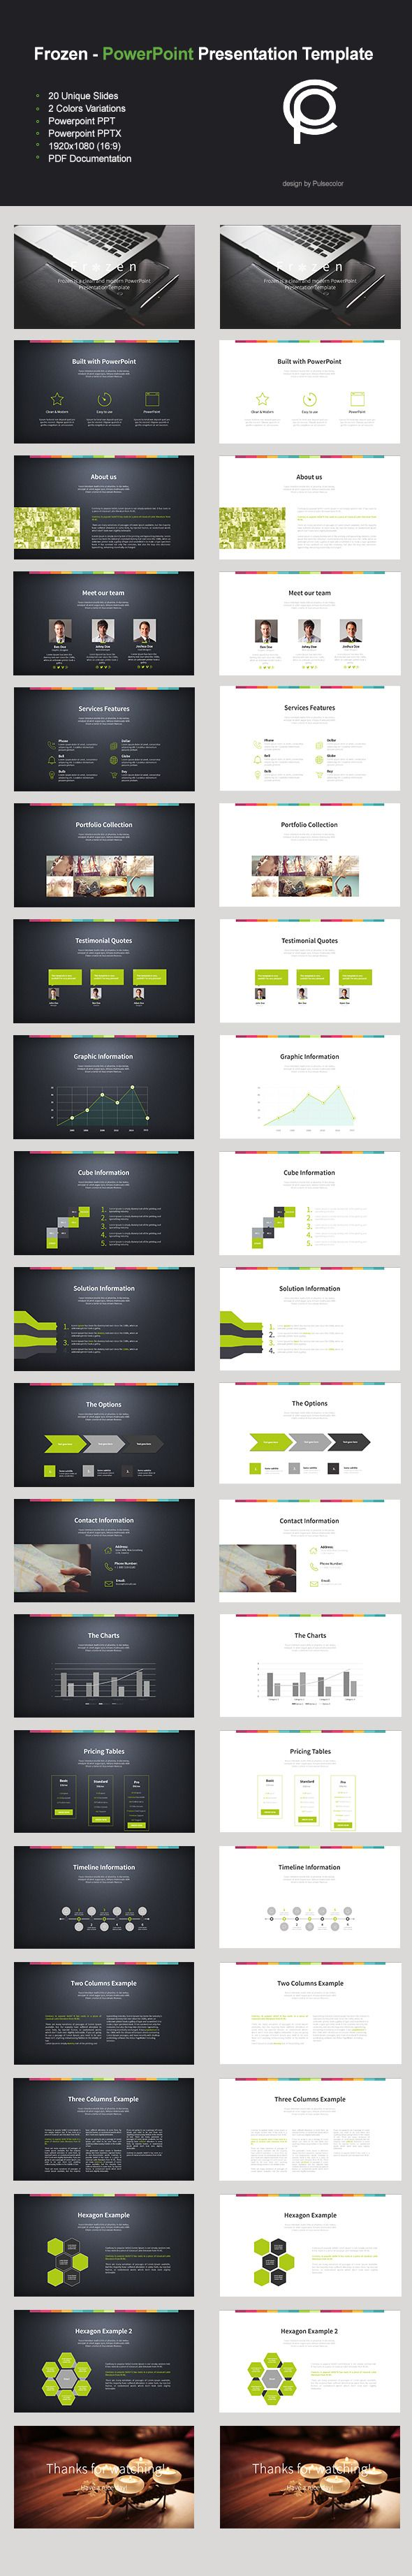 Frozen - PowerPoint Presentation Template #powerpoint #powerpointtemplate #presentation Download: http://graphicriver.net/item/frozen-powerpoint-presentation-template/10243333?ref=ksioks